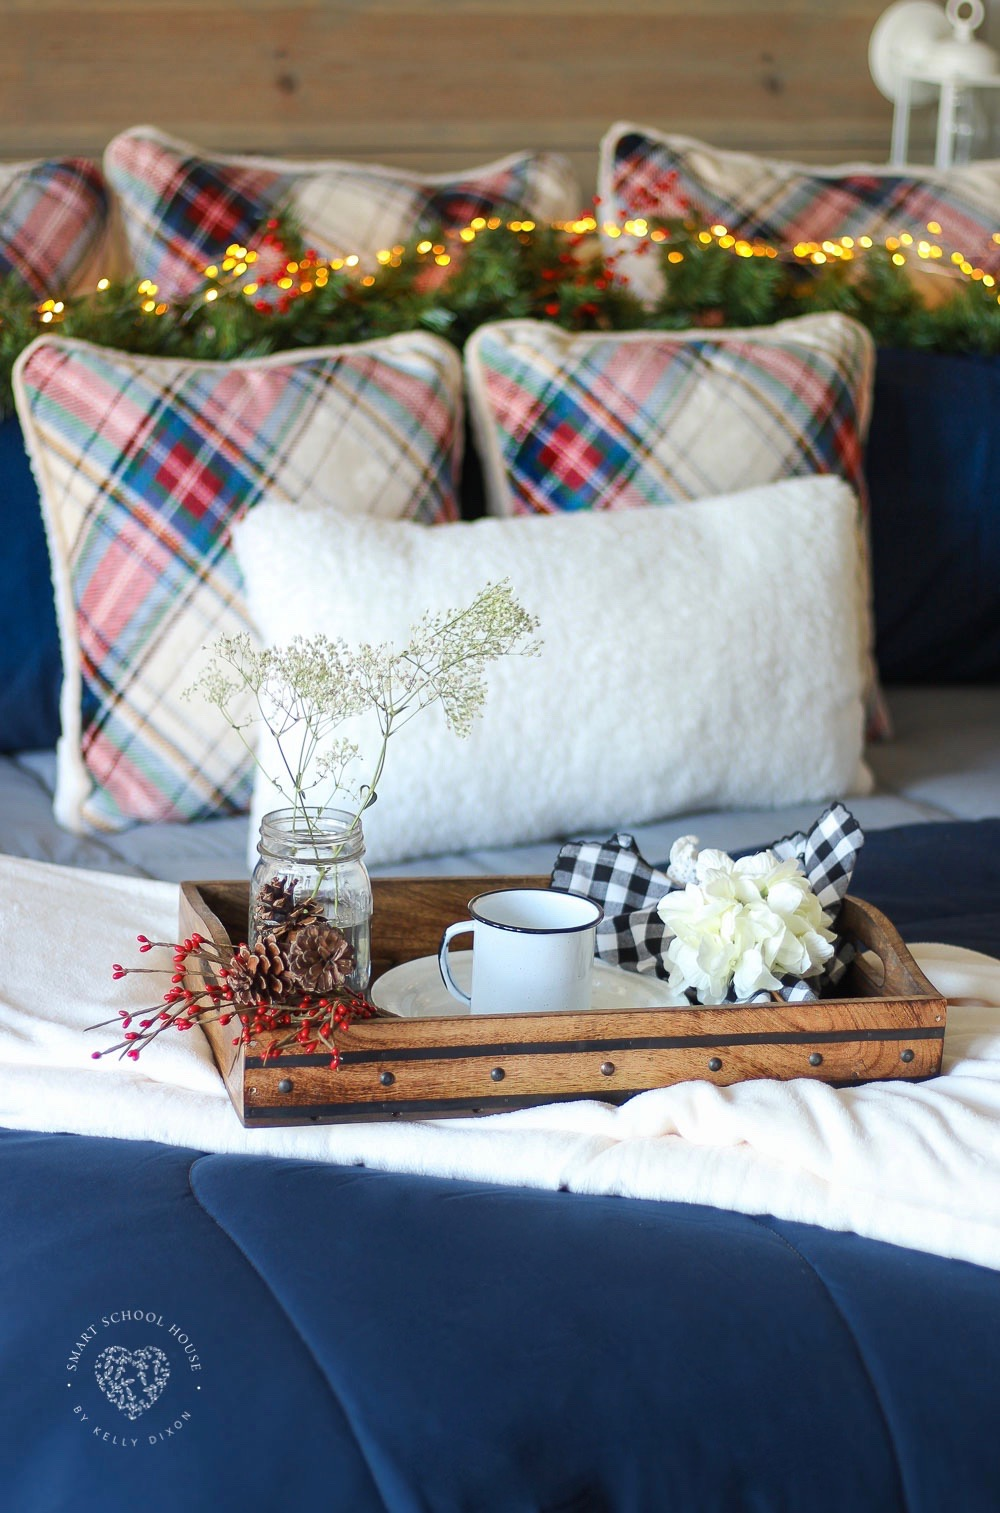 Cozy Holiday Bedding. Plaid pillows, garland, lanterns, and fairy lights.